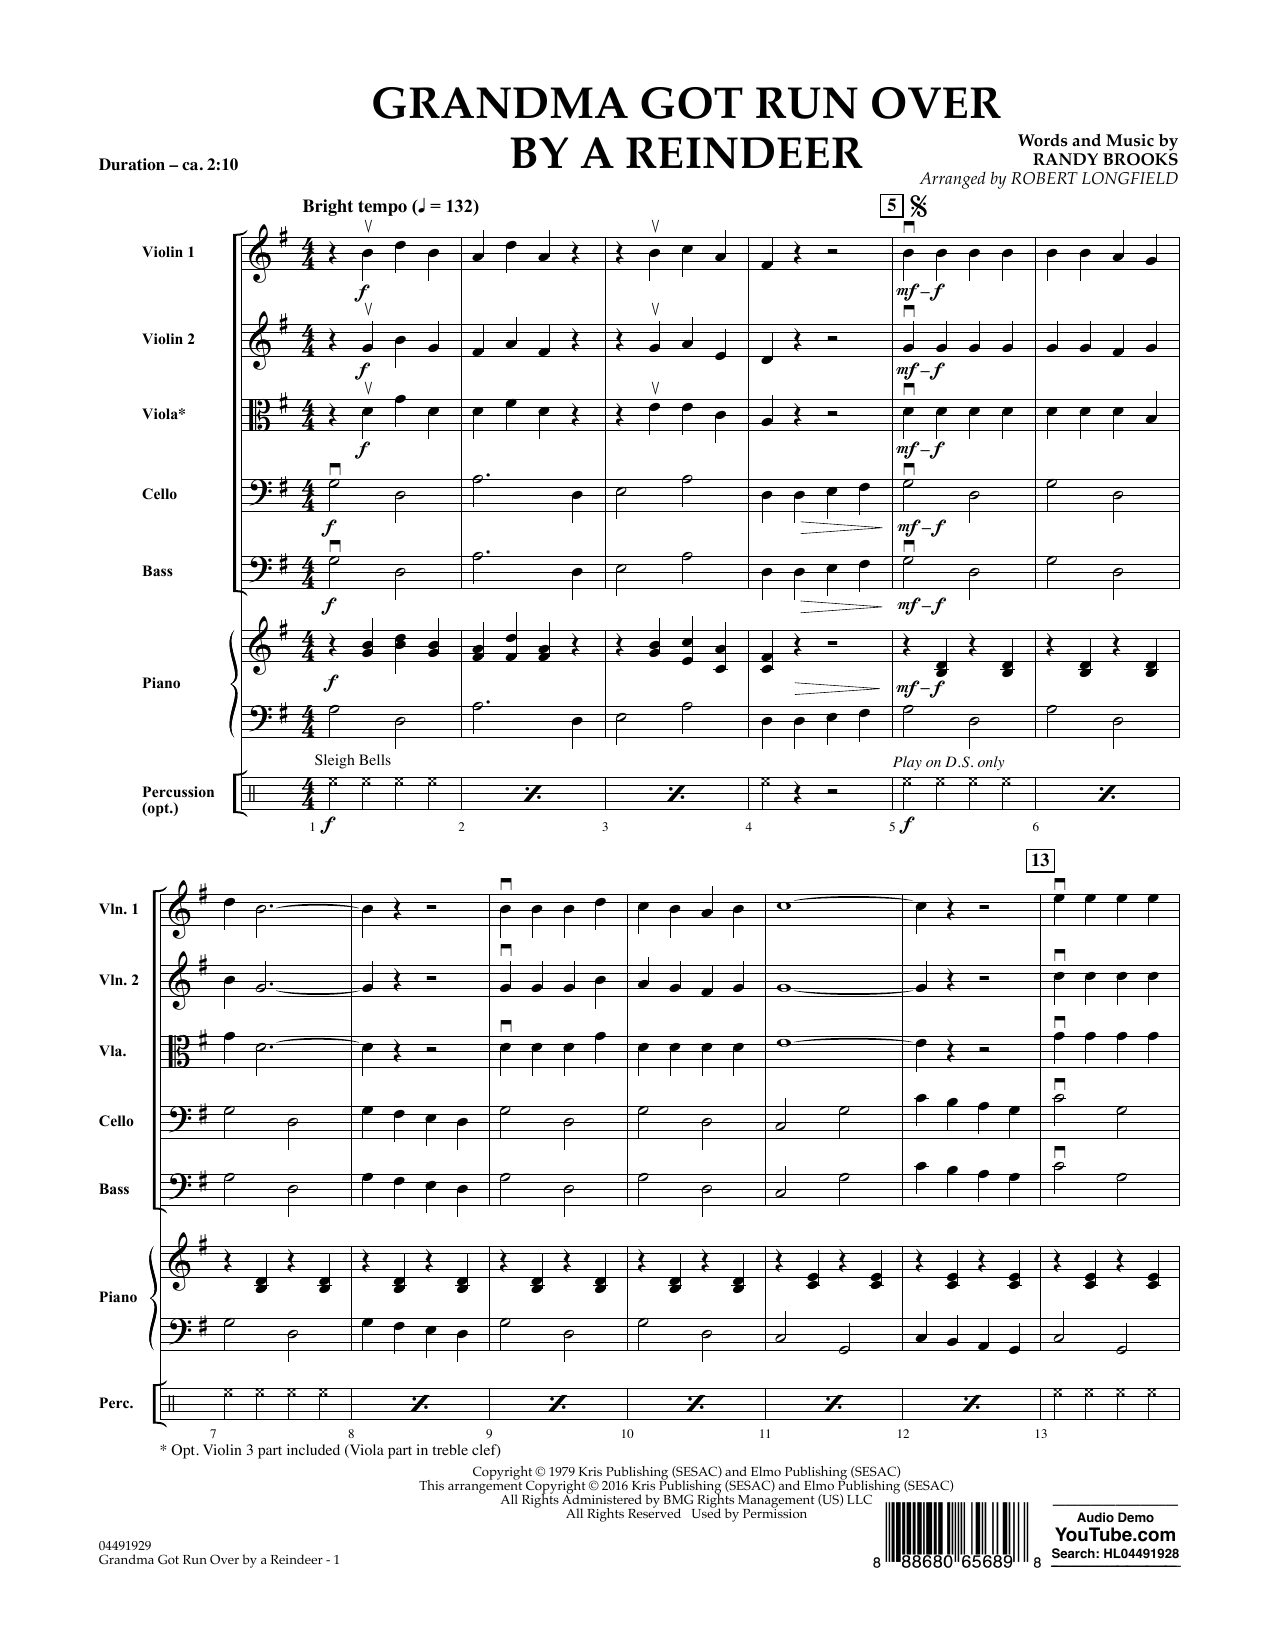 Grandma Got Run Over by a Reindeer (COMPLETE) sheet music for orchestra by Randy Brooks and Robert Longfield. Score Image Preview.